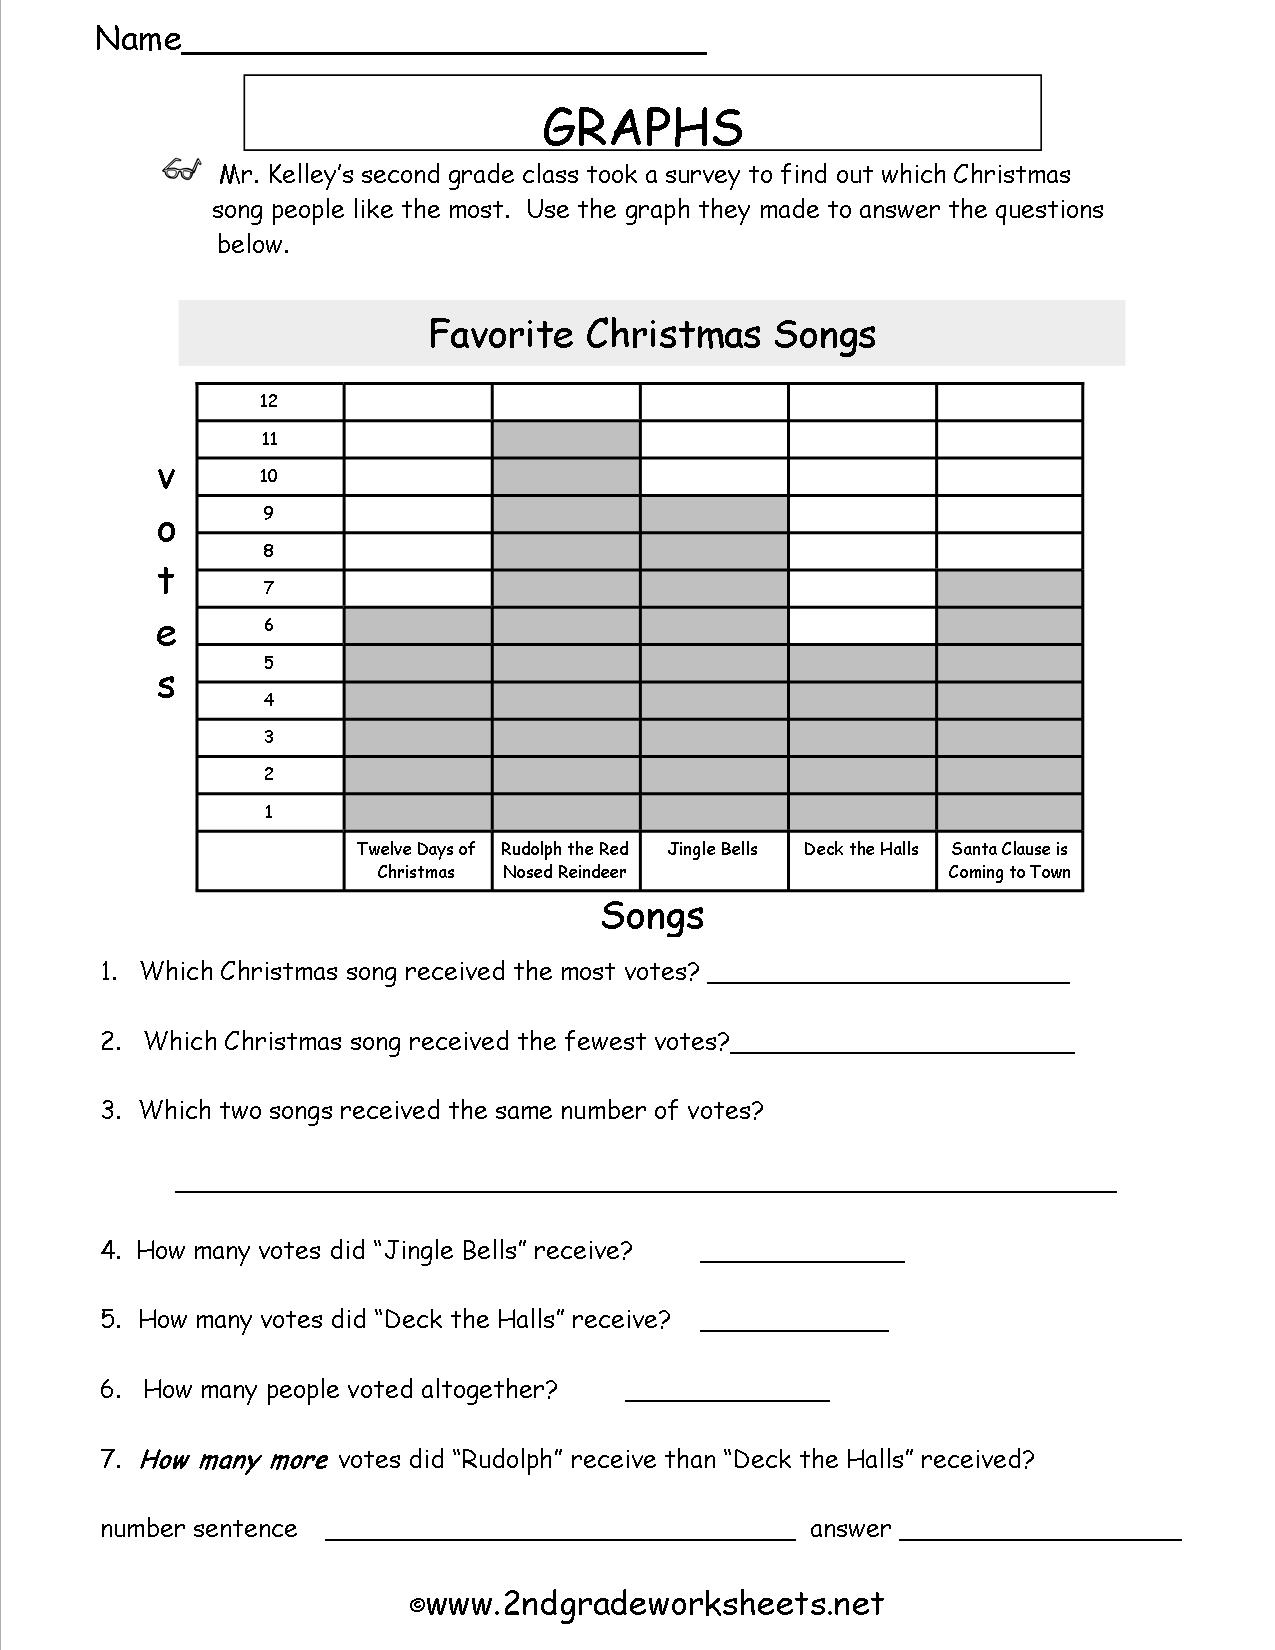 10 Best Images Of Bar And Line Graph Worksheets